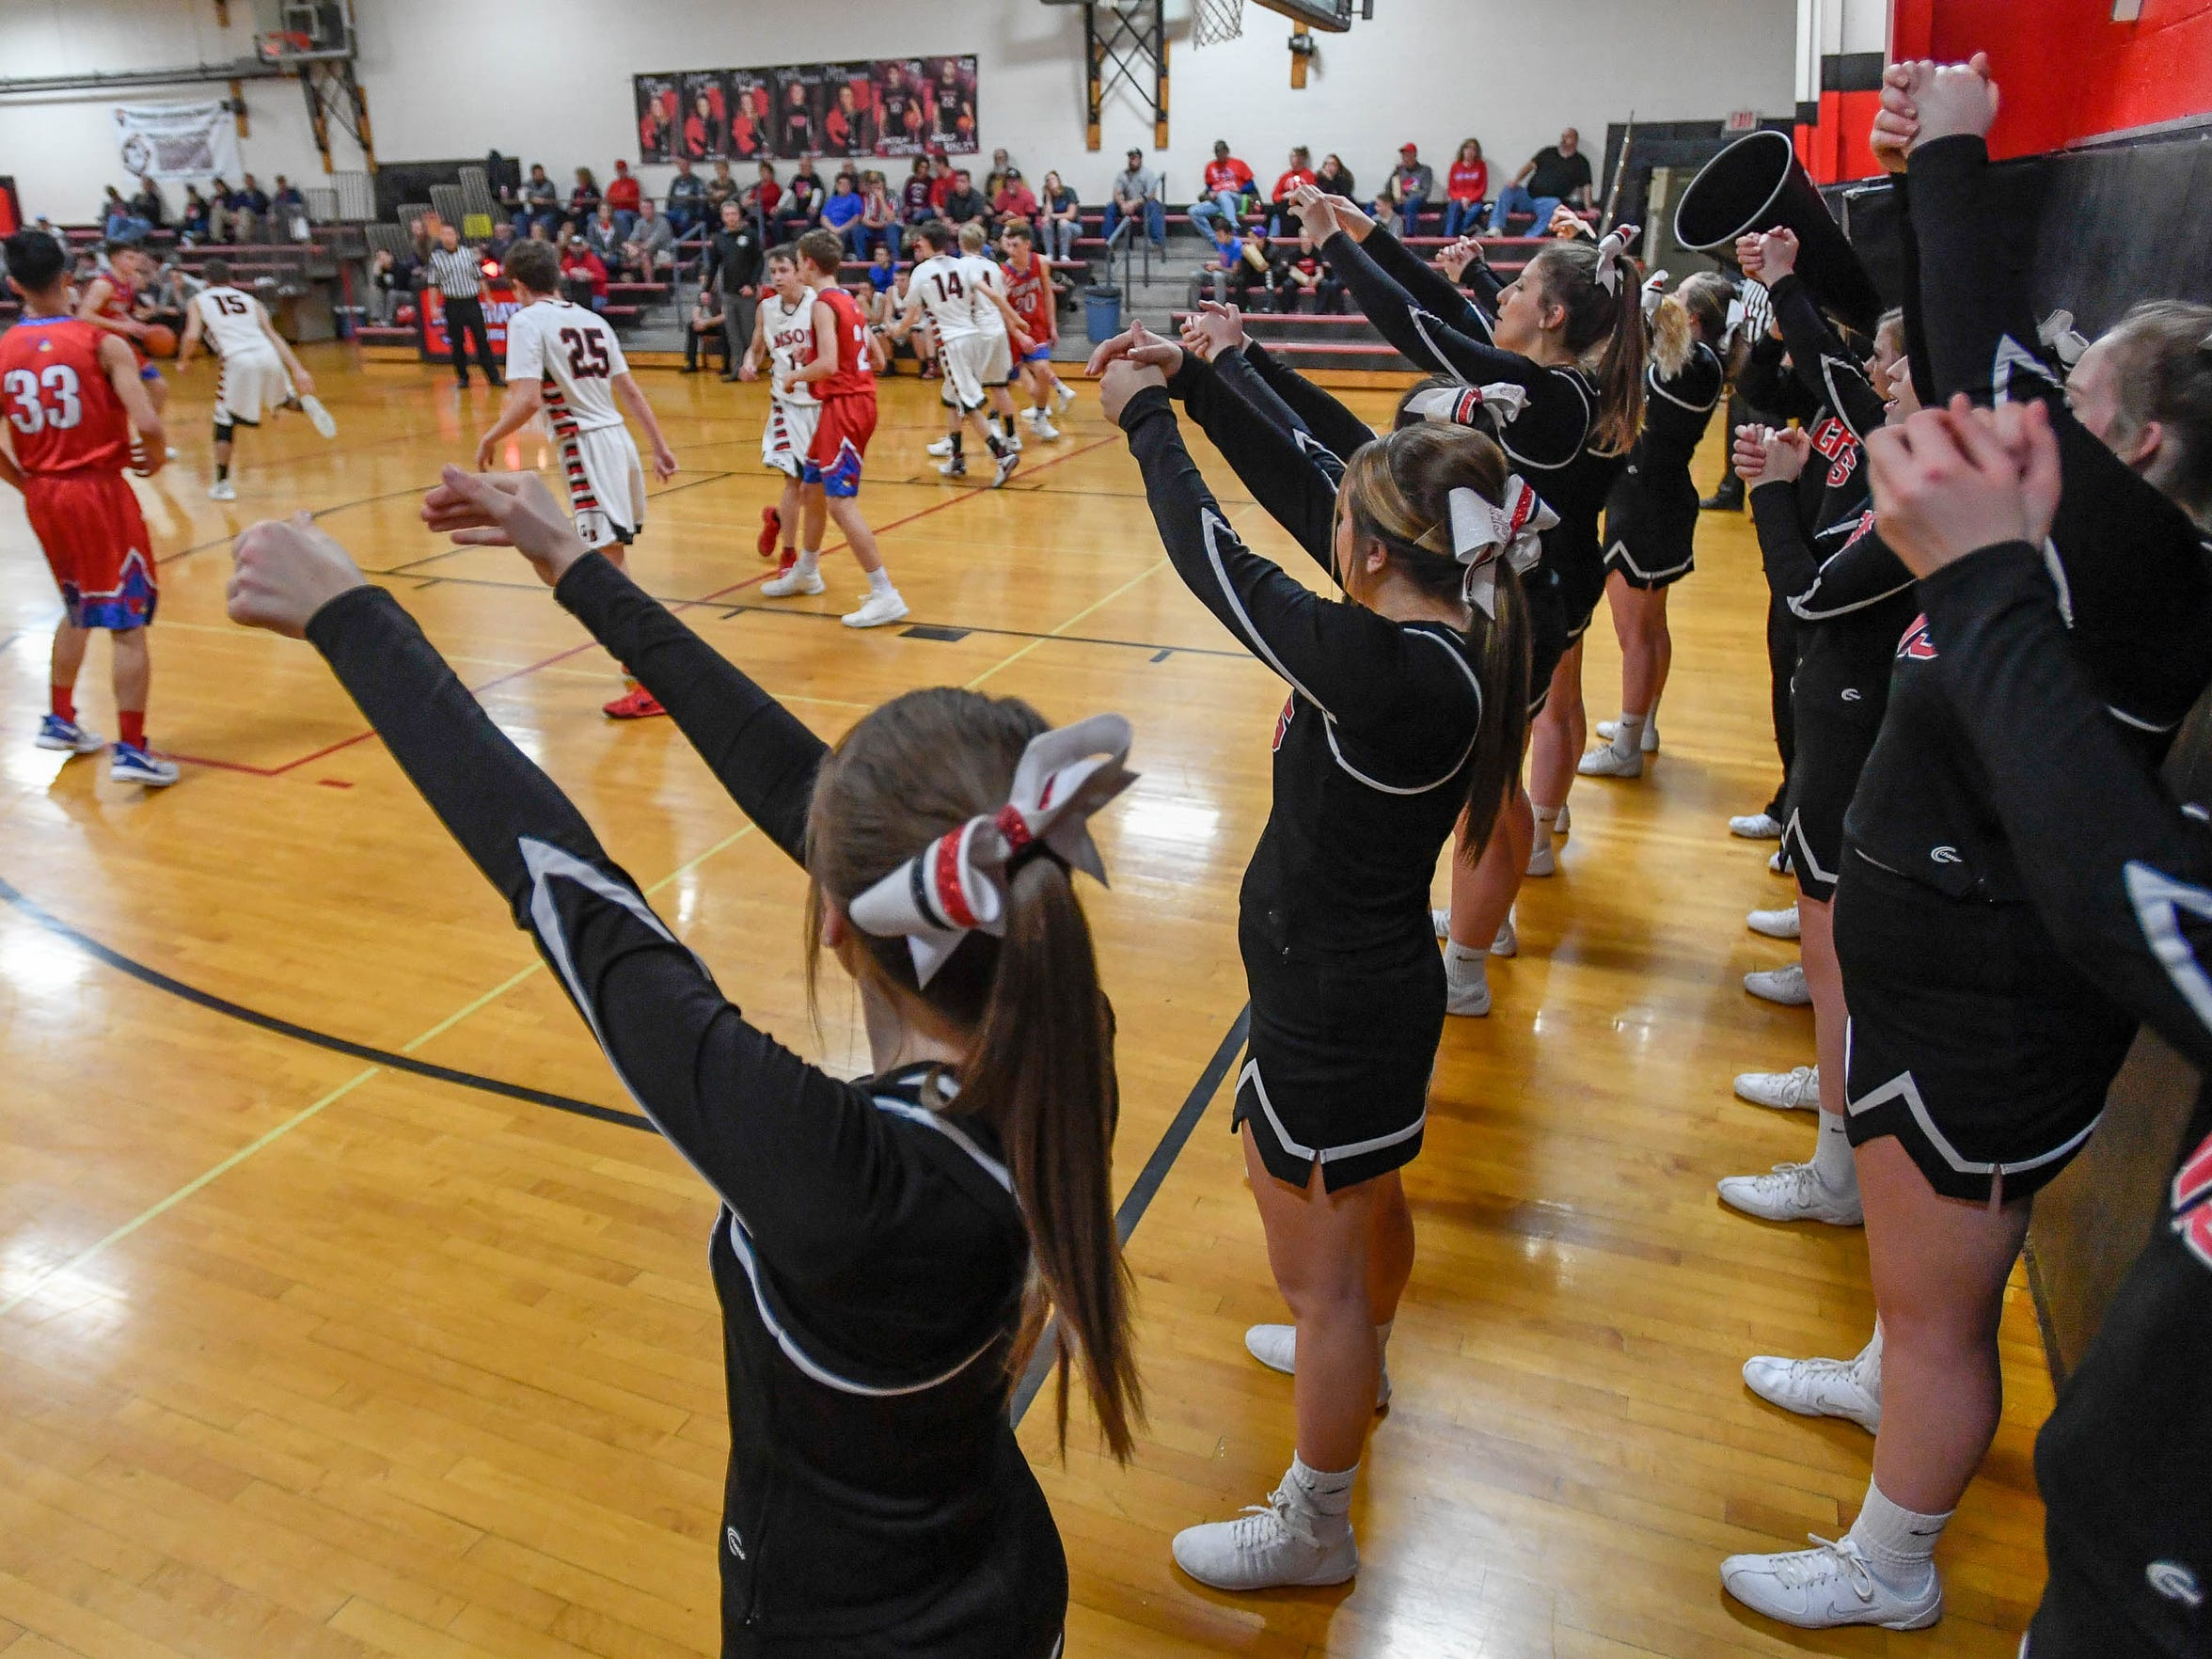 The Grayville Bison cheerleaders lead a cheer during